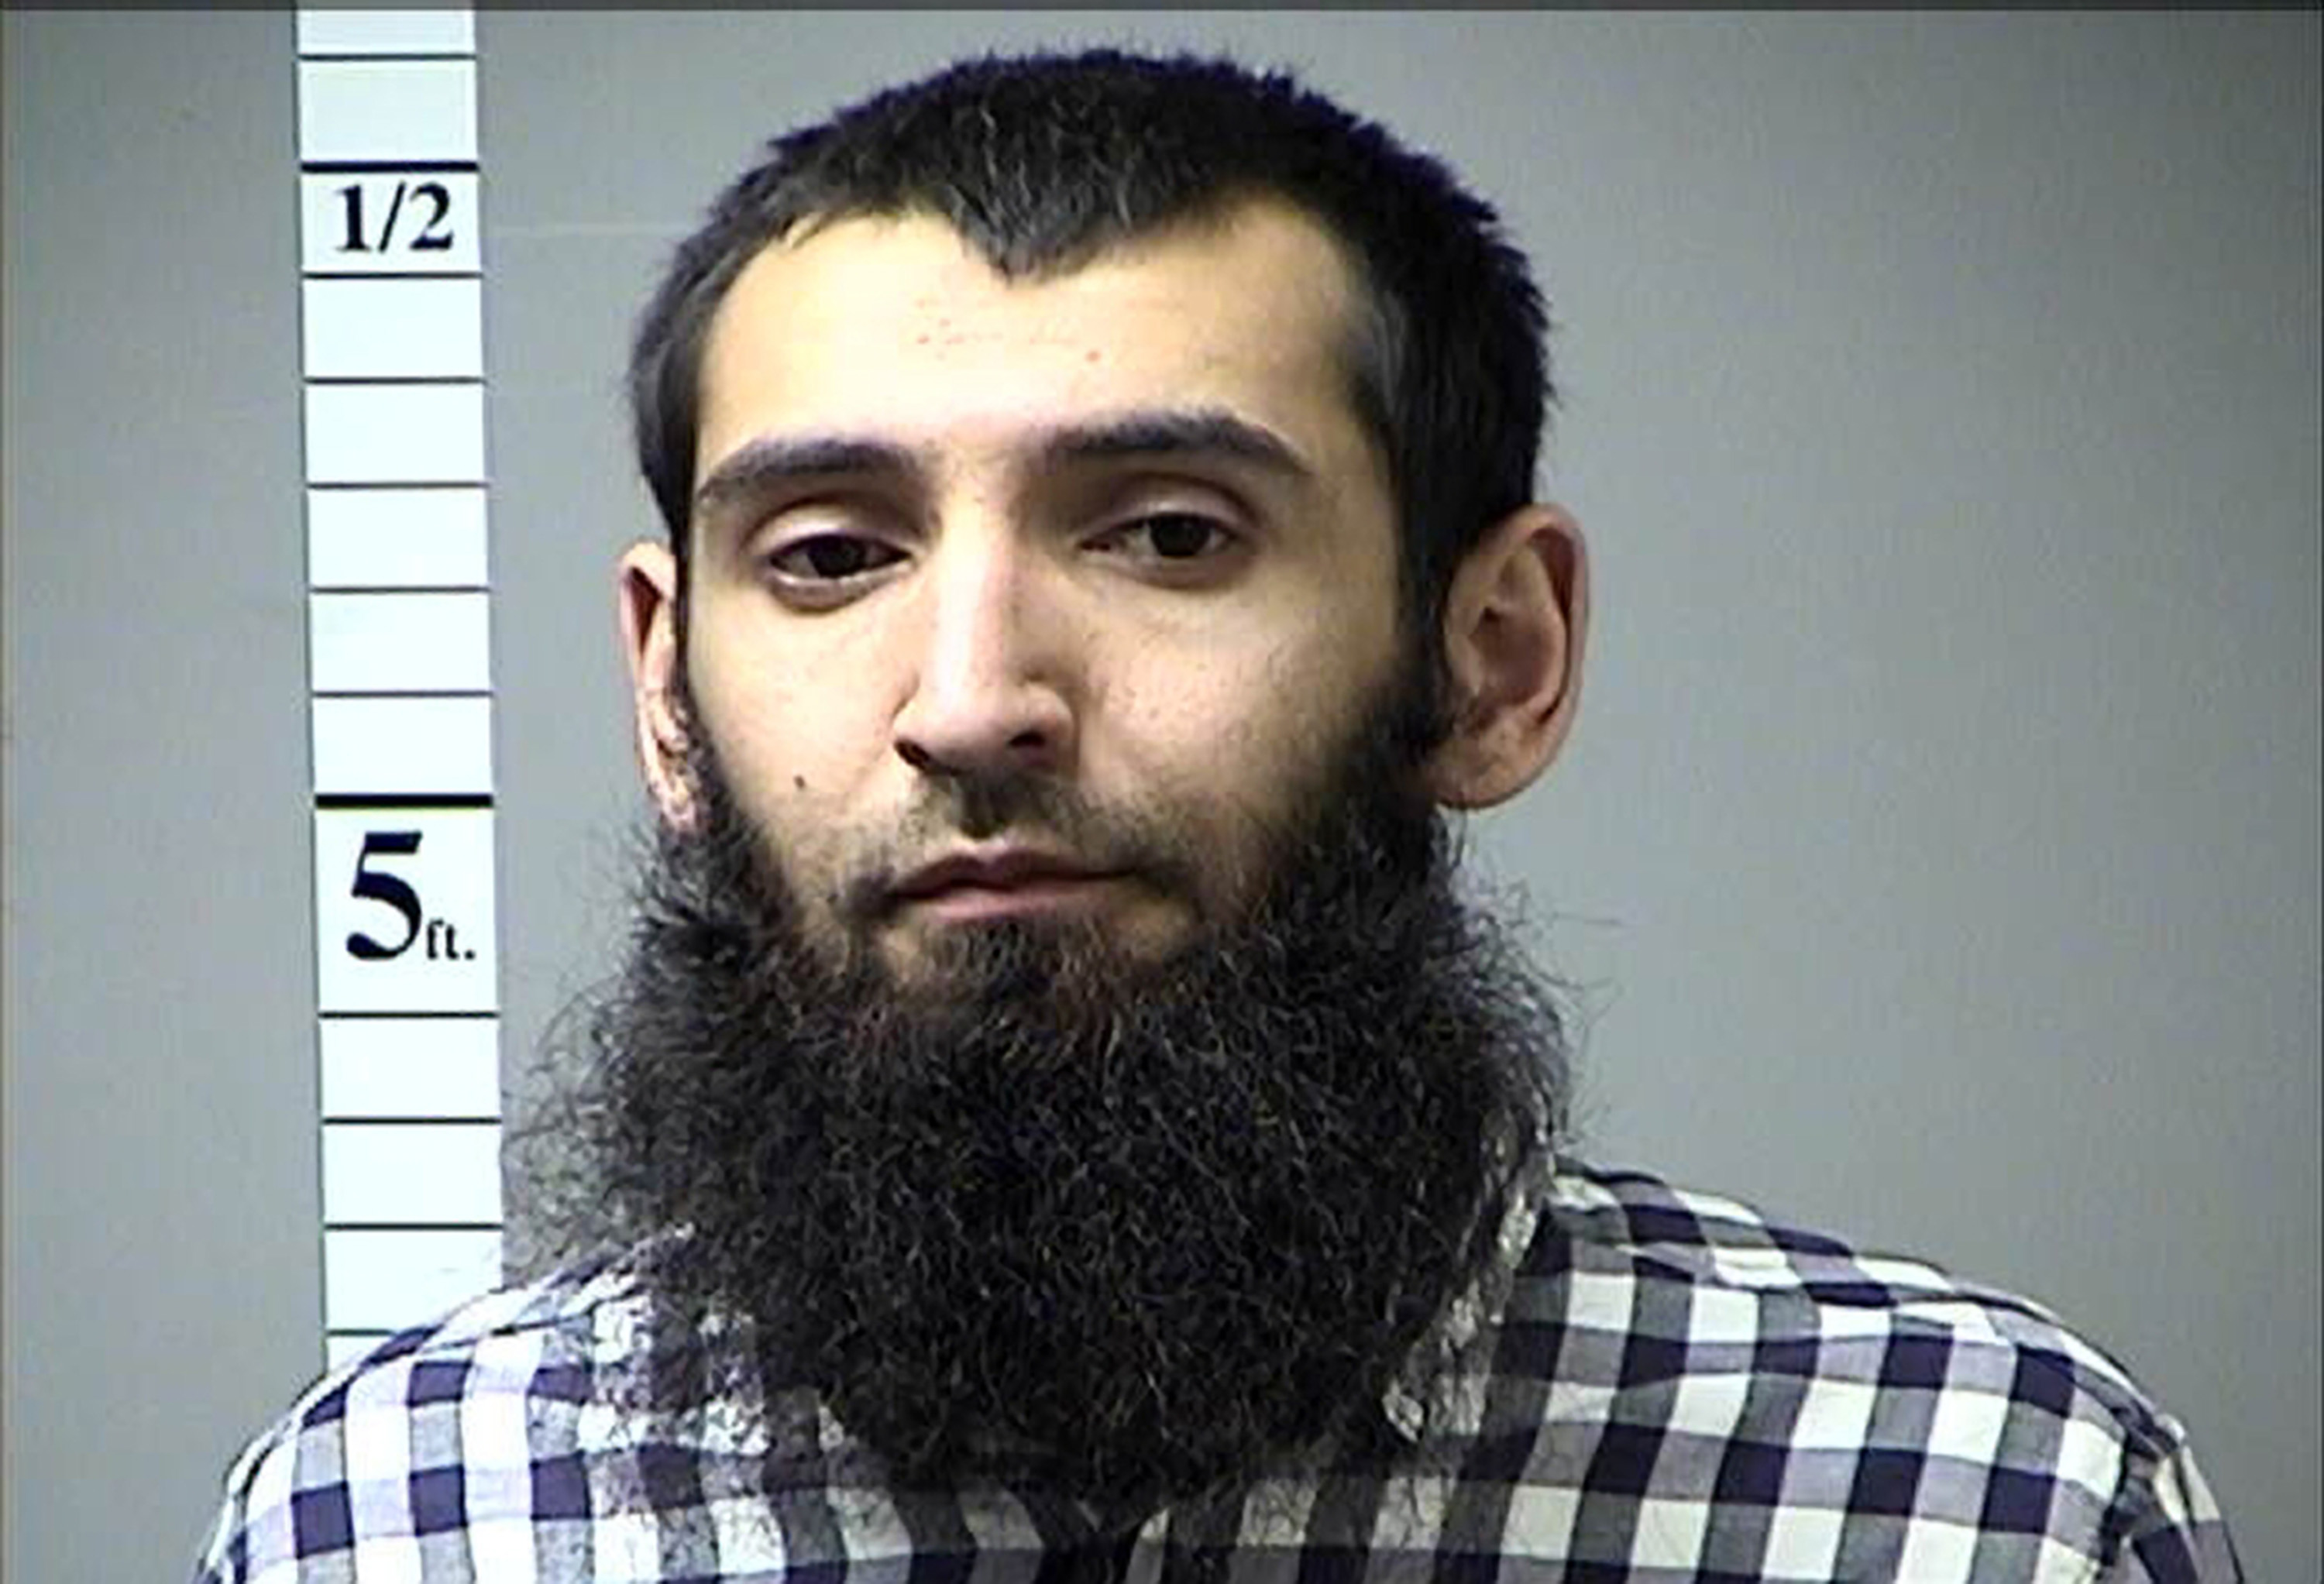 NYC terror suspect drove more than 1,400 trips for Uber after passing background check Featured